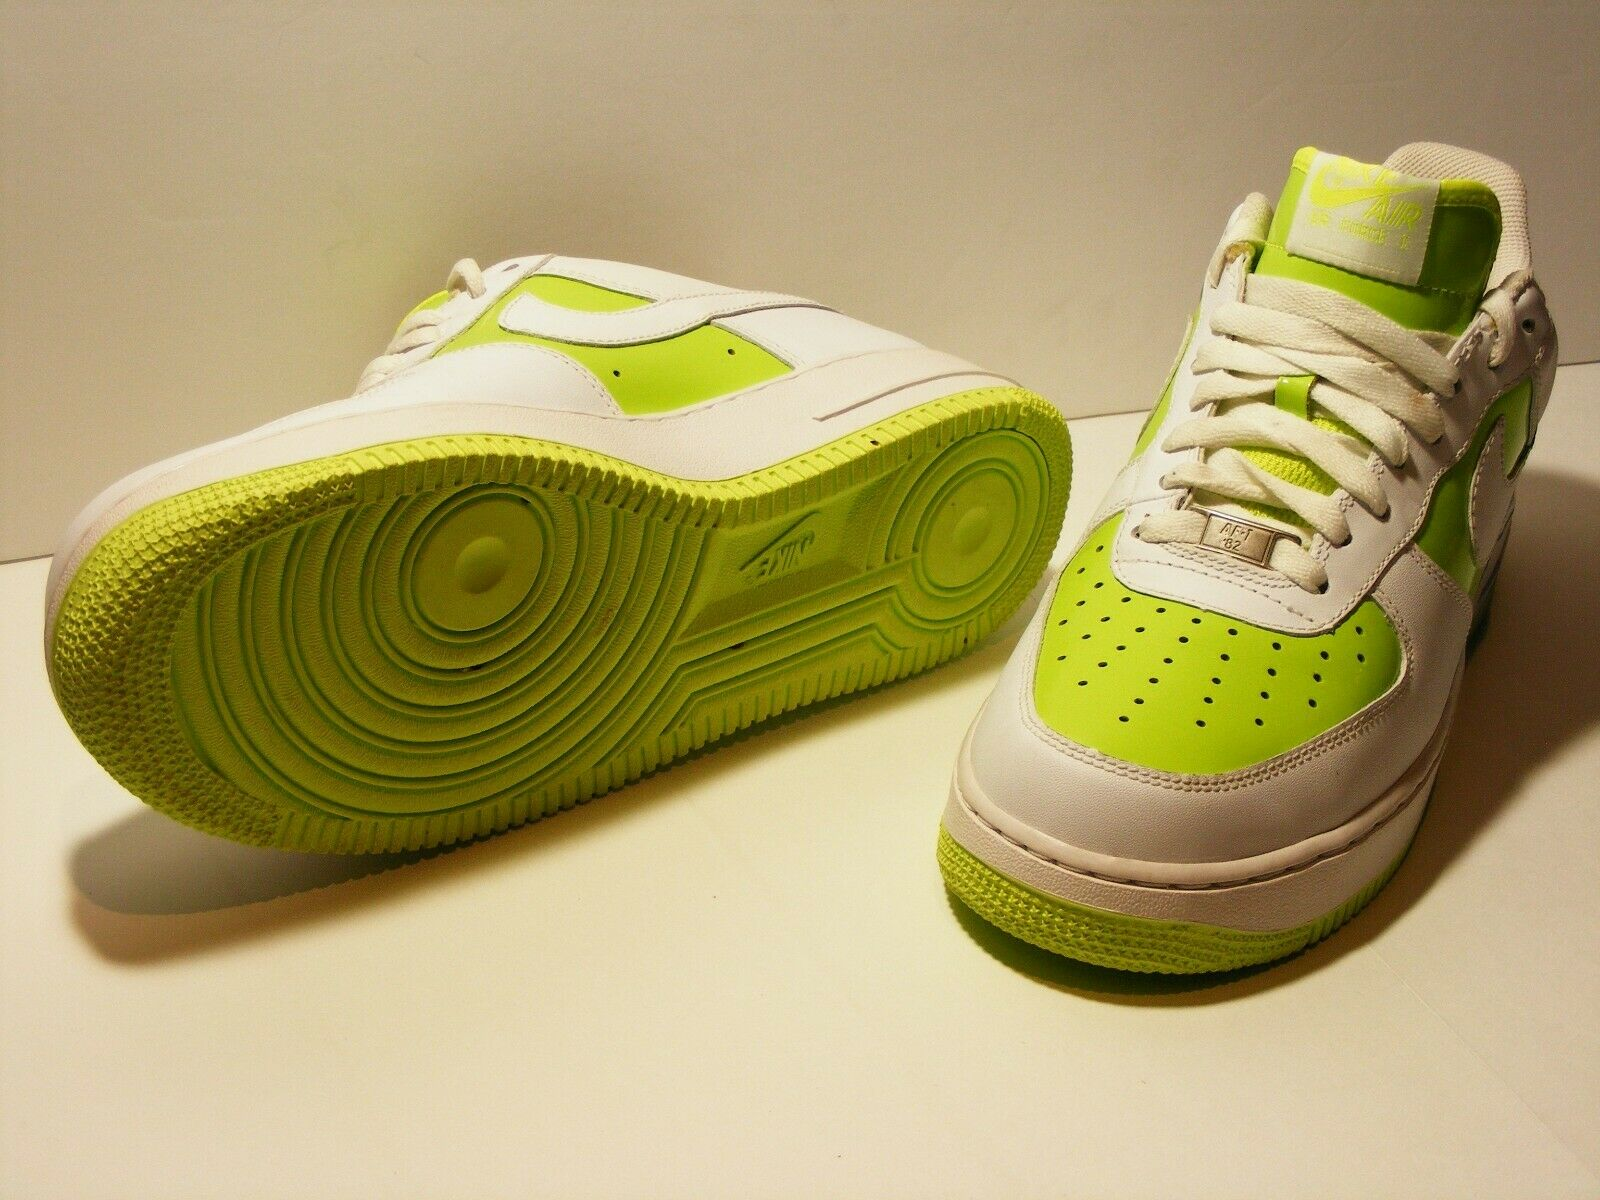 Nike WMN Air Force Force Force 1 Low Volt Lime White 315115-712 US 10.5 517415